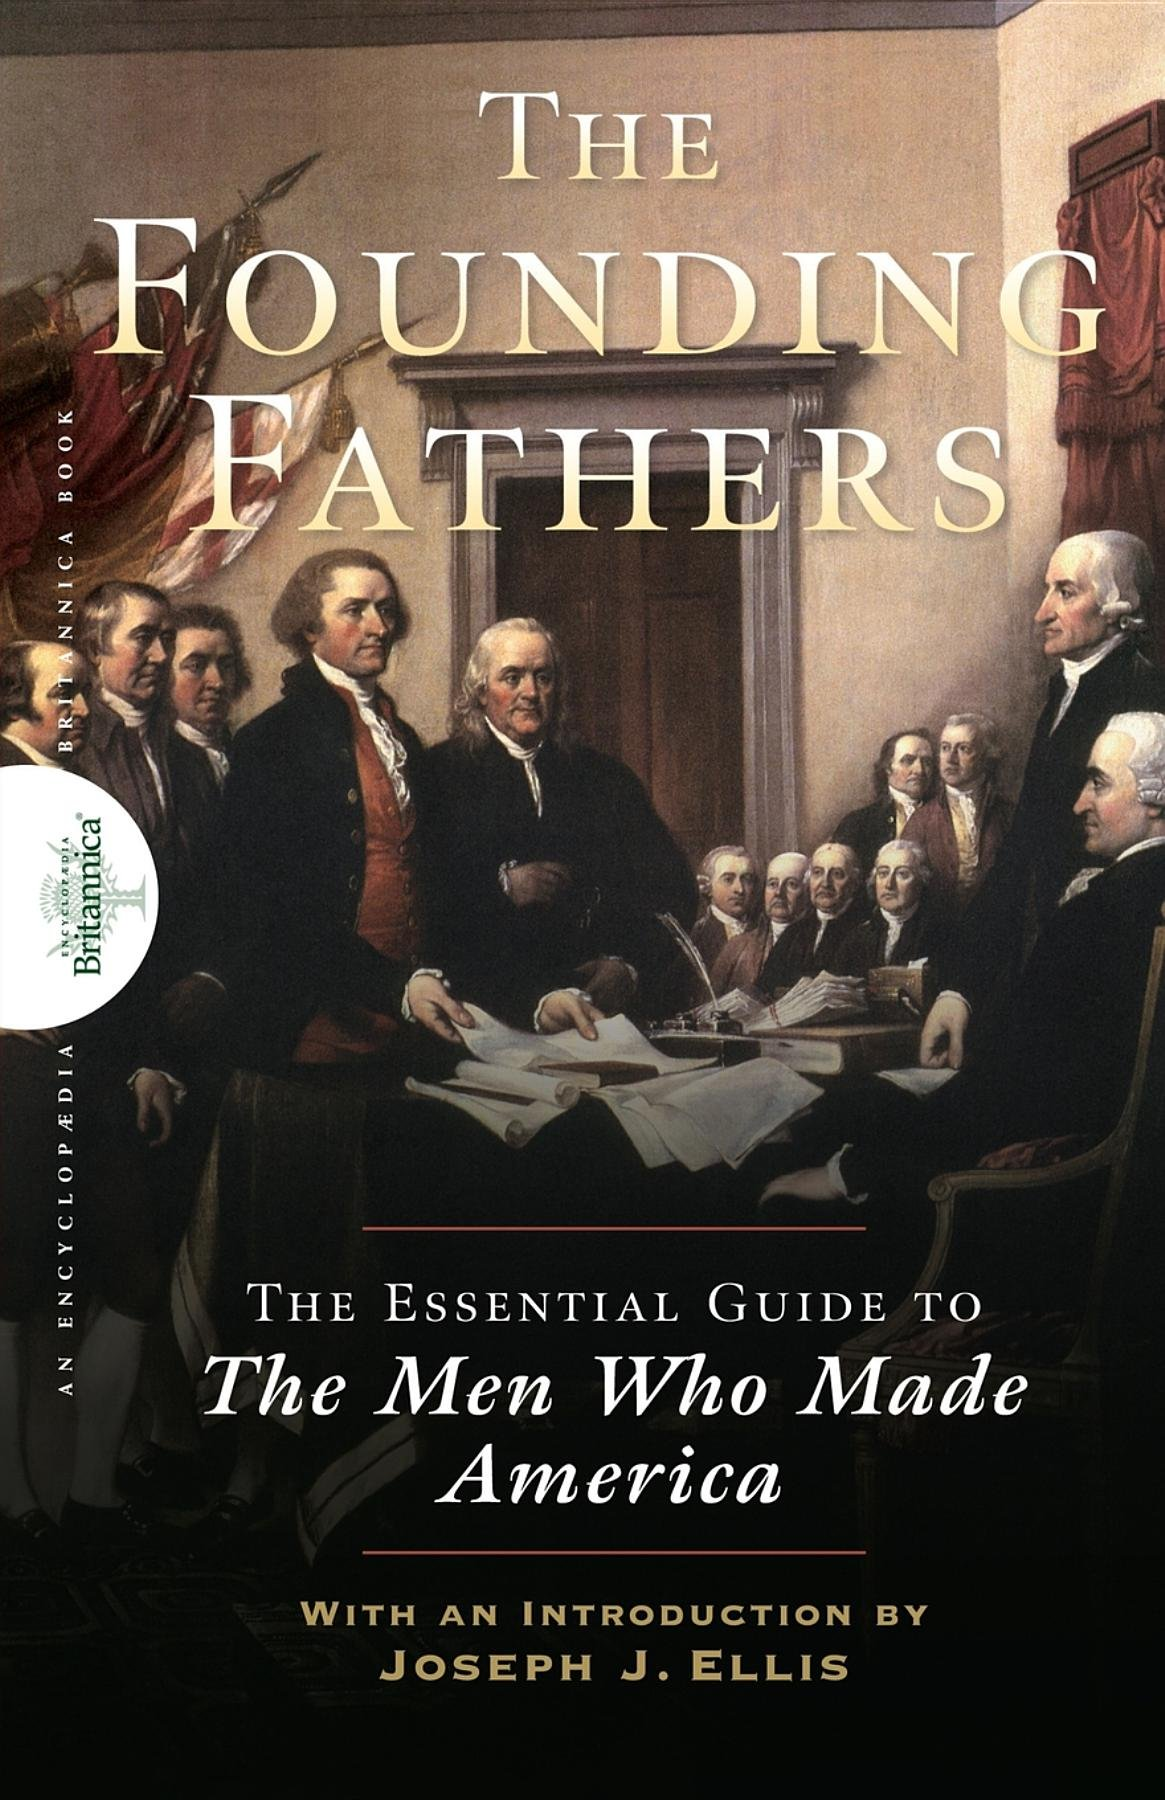 com founding fathers the essential guide to the men who com founding fathers the essential guide to the men who made america 9780470117927 encyclopaedia britannica books